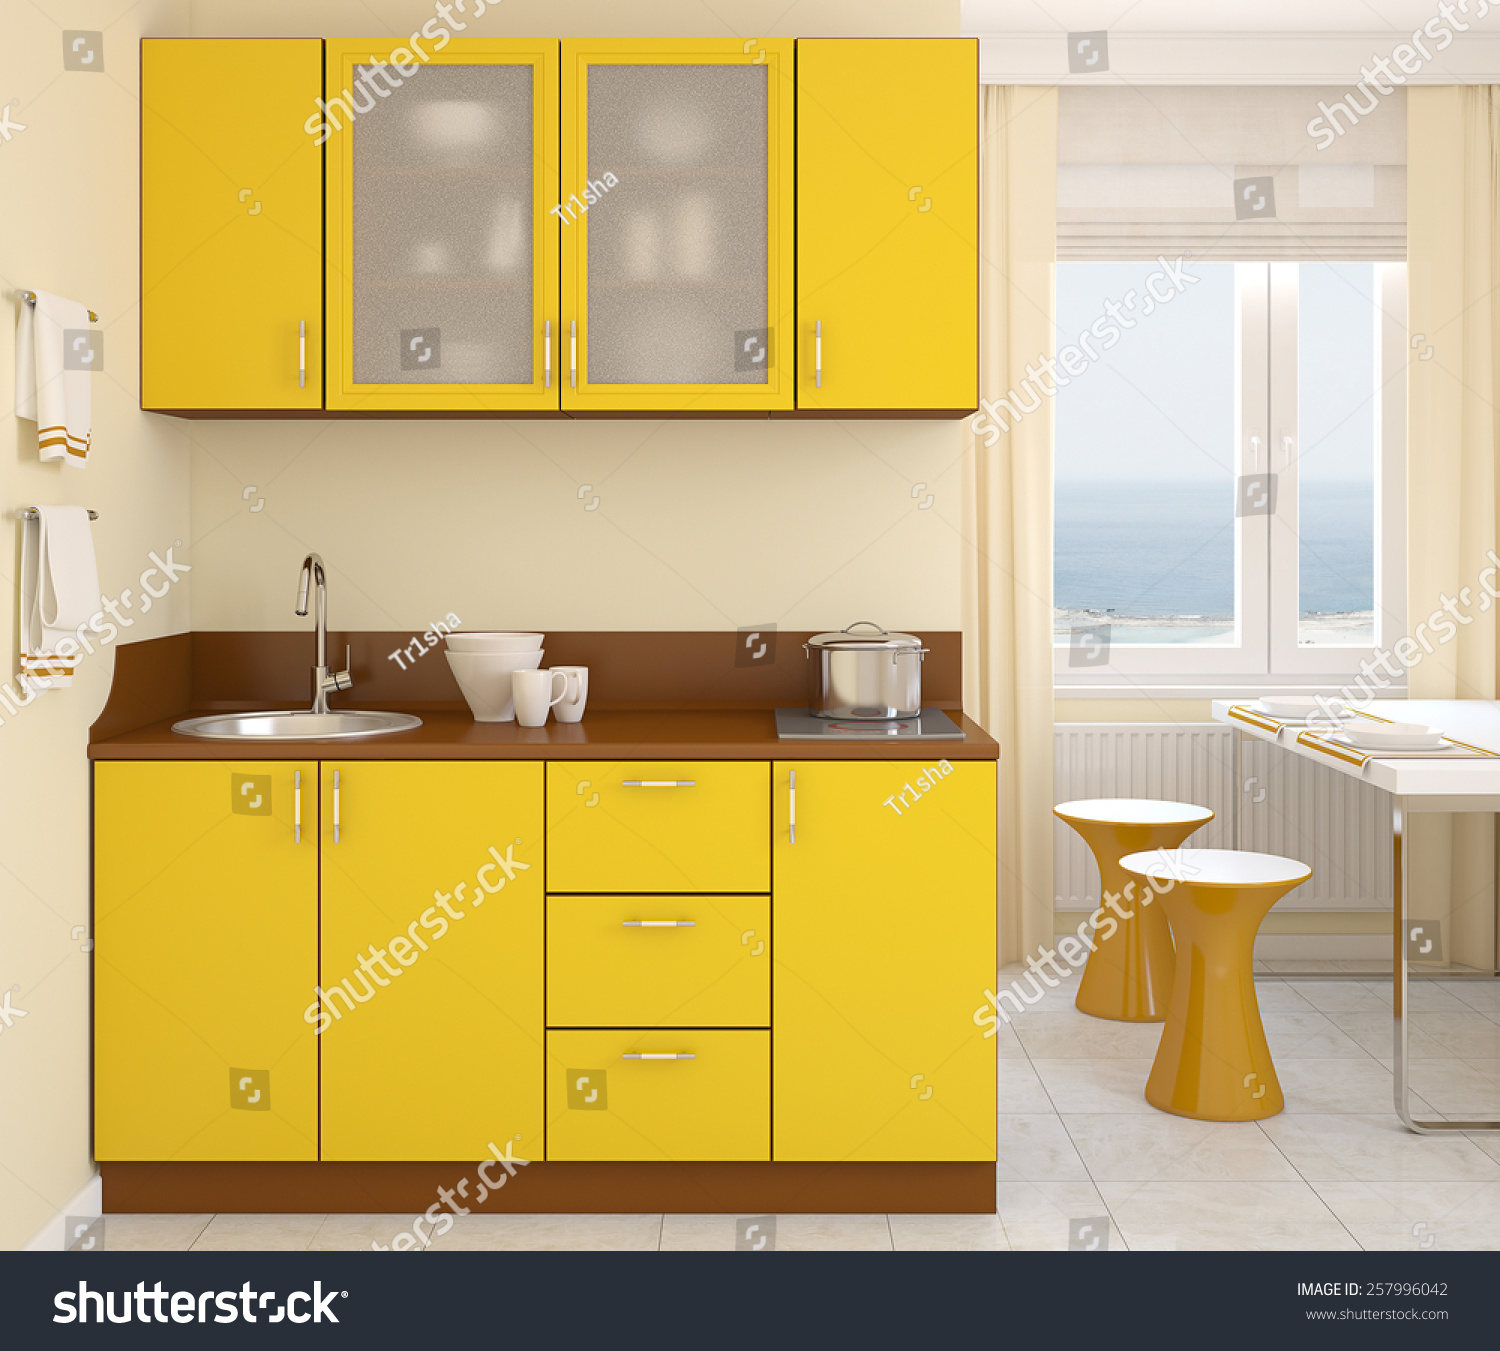 modern small yellow kitchen 3d render photo behind the window was